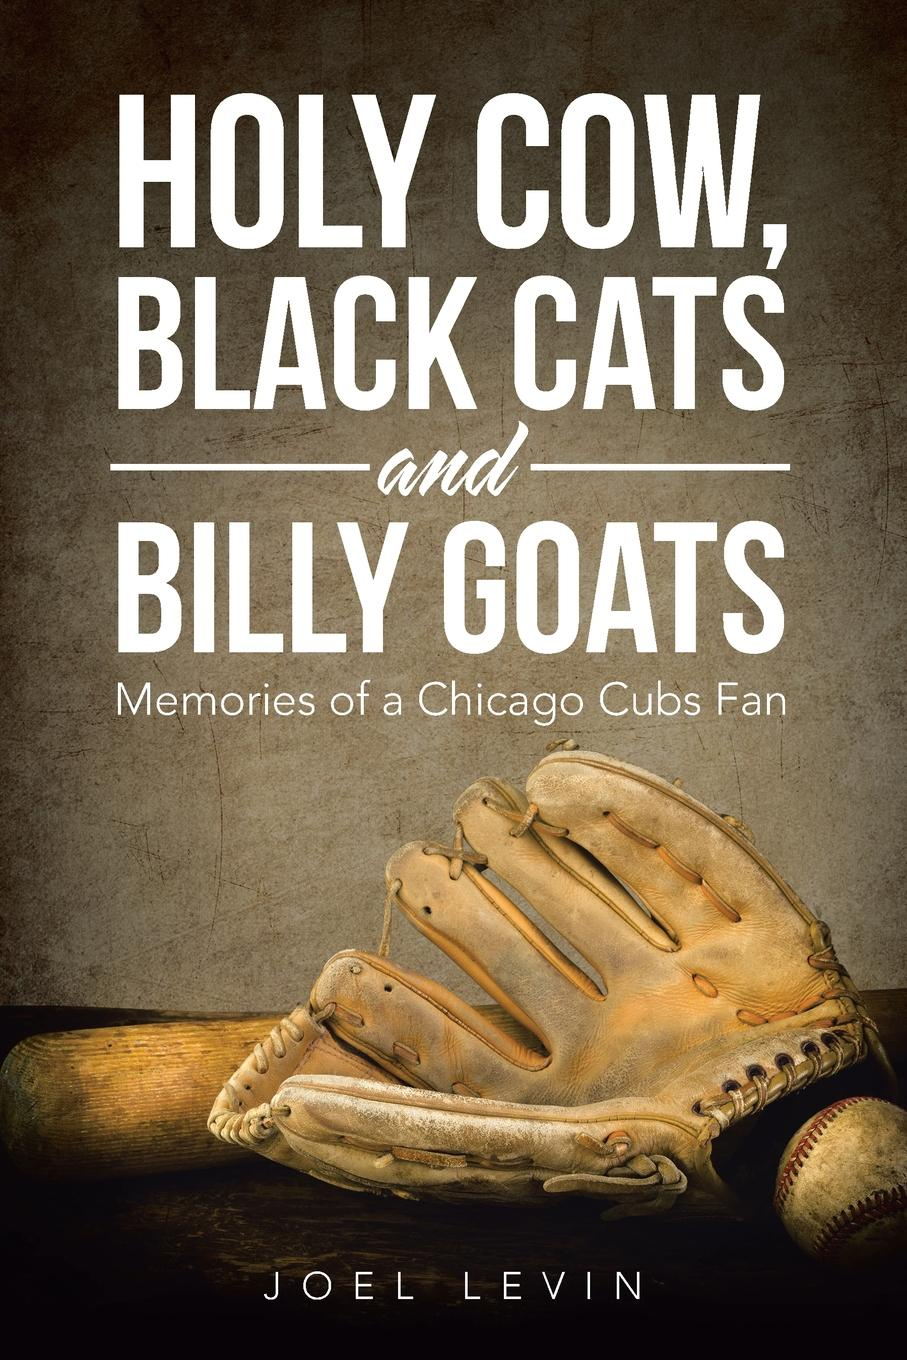 Joel Levin Holy Cow, Black Cats and Billy Goats. Memories of a Chicago Cubs Fan